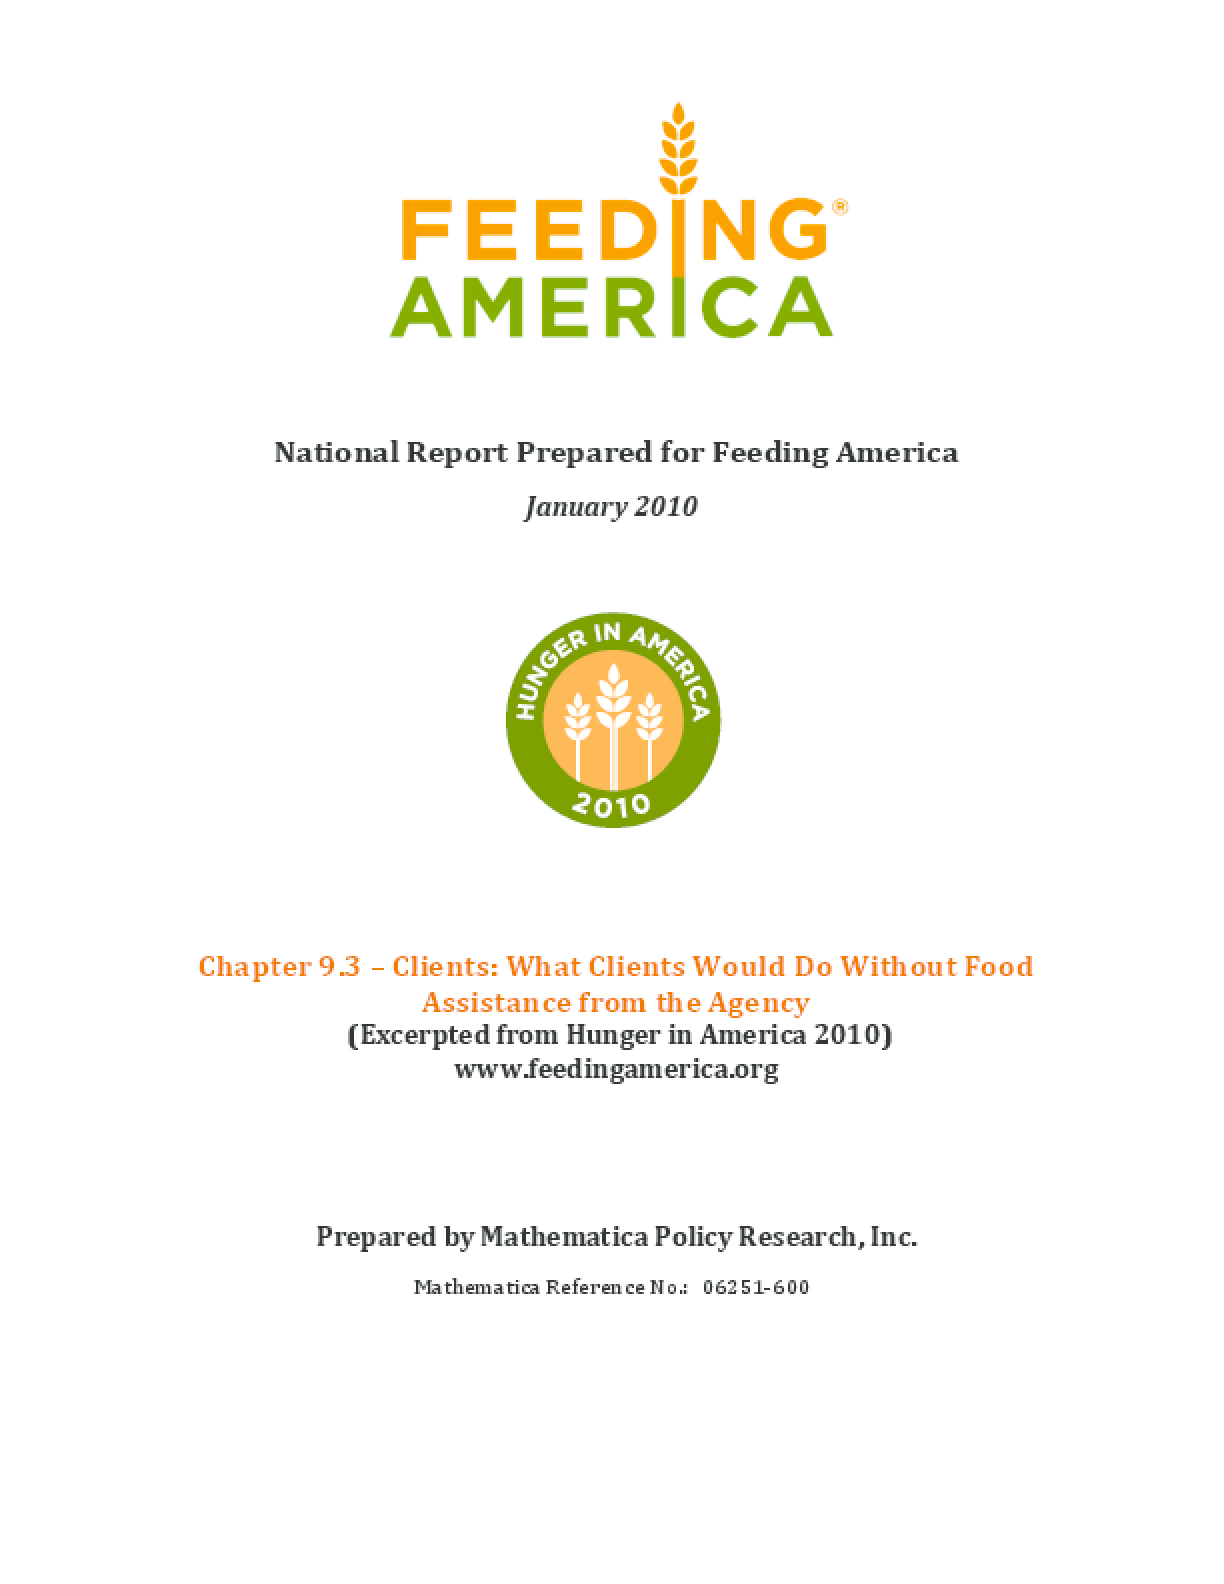 What Feeding America Clients Would Do Without Food Assistance from the Agency